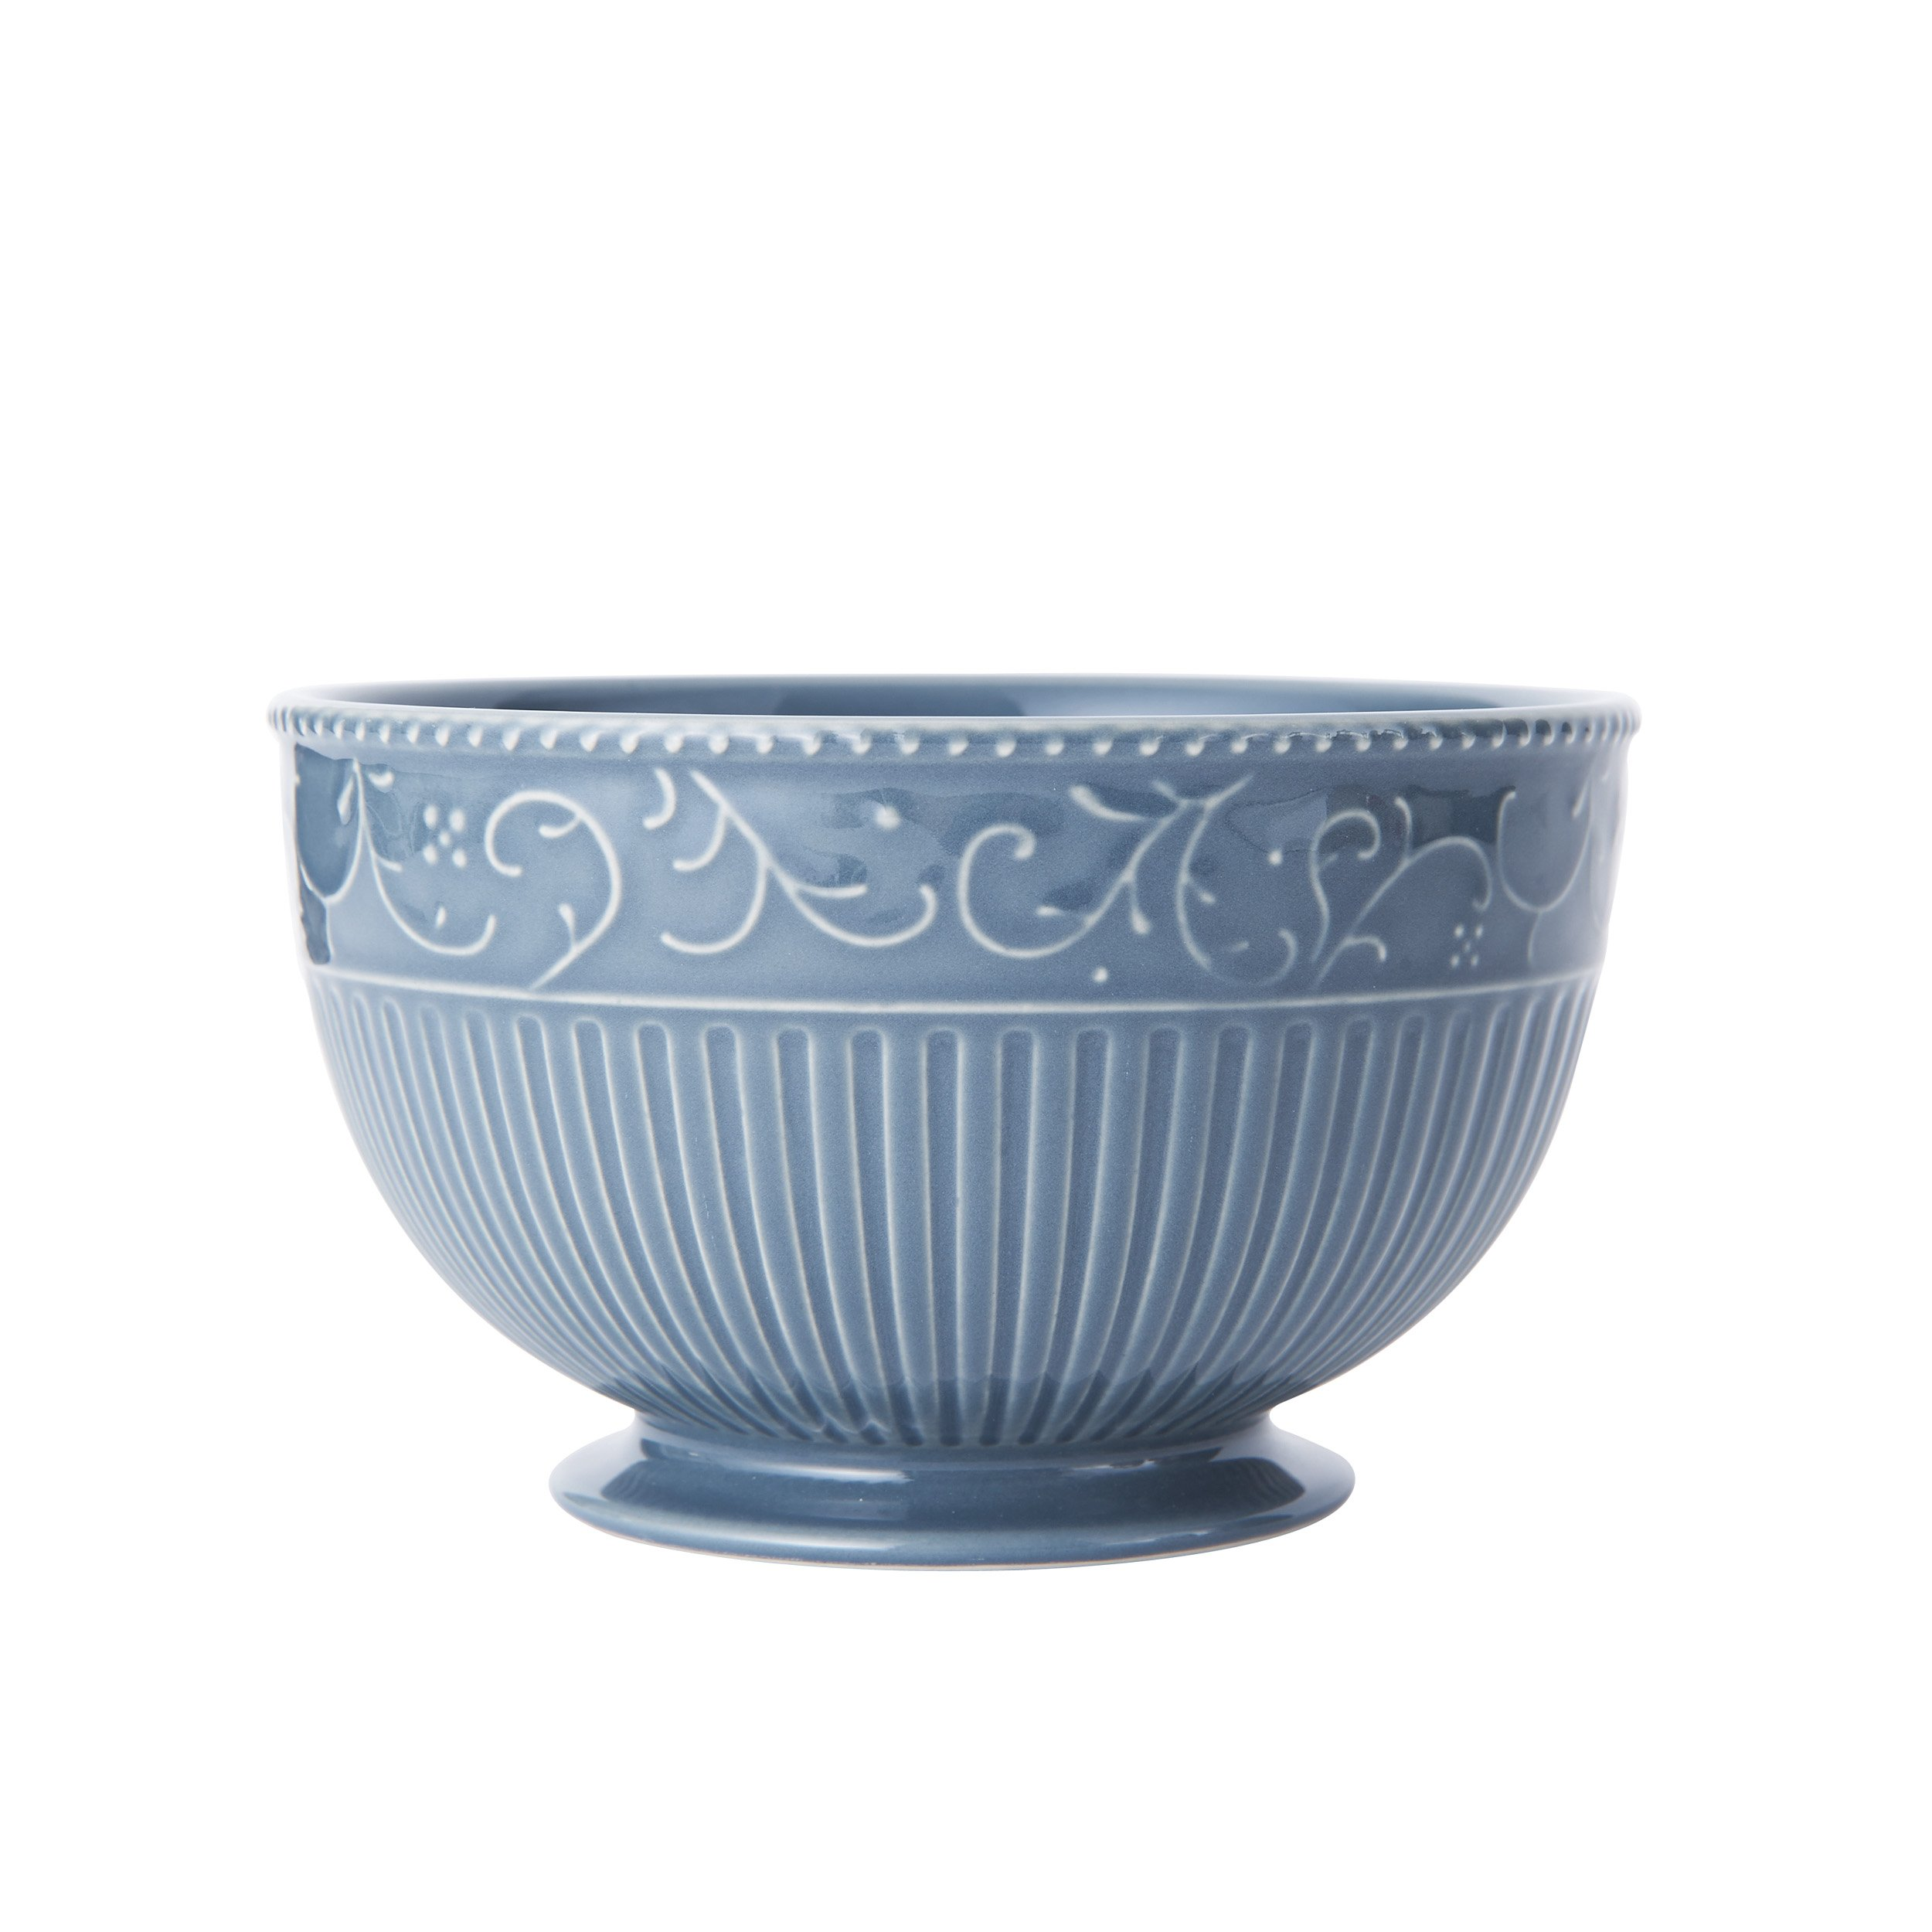 Mikasa Italian Countryside Accents Footed Soup/Cereal Bowl, Scroll Blue